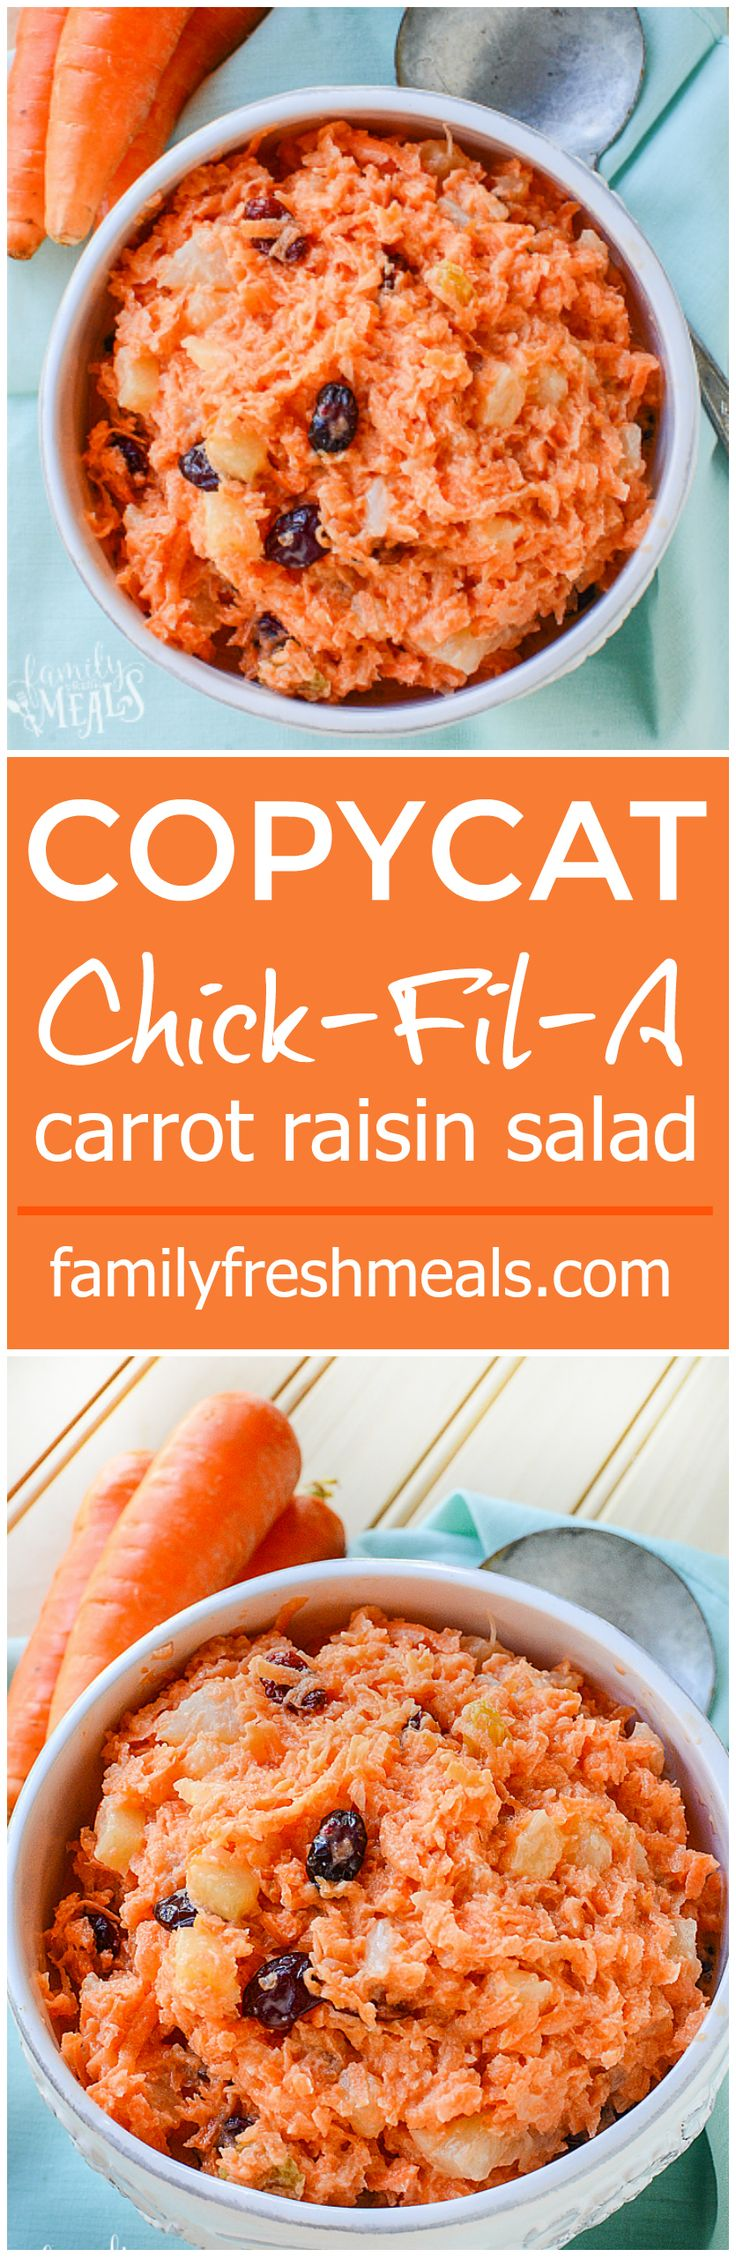 Nothing beat this COPYCAT Chick-Fil-A Carrot Raisin Salad Recipe!